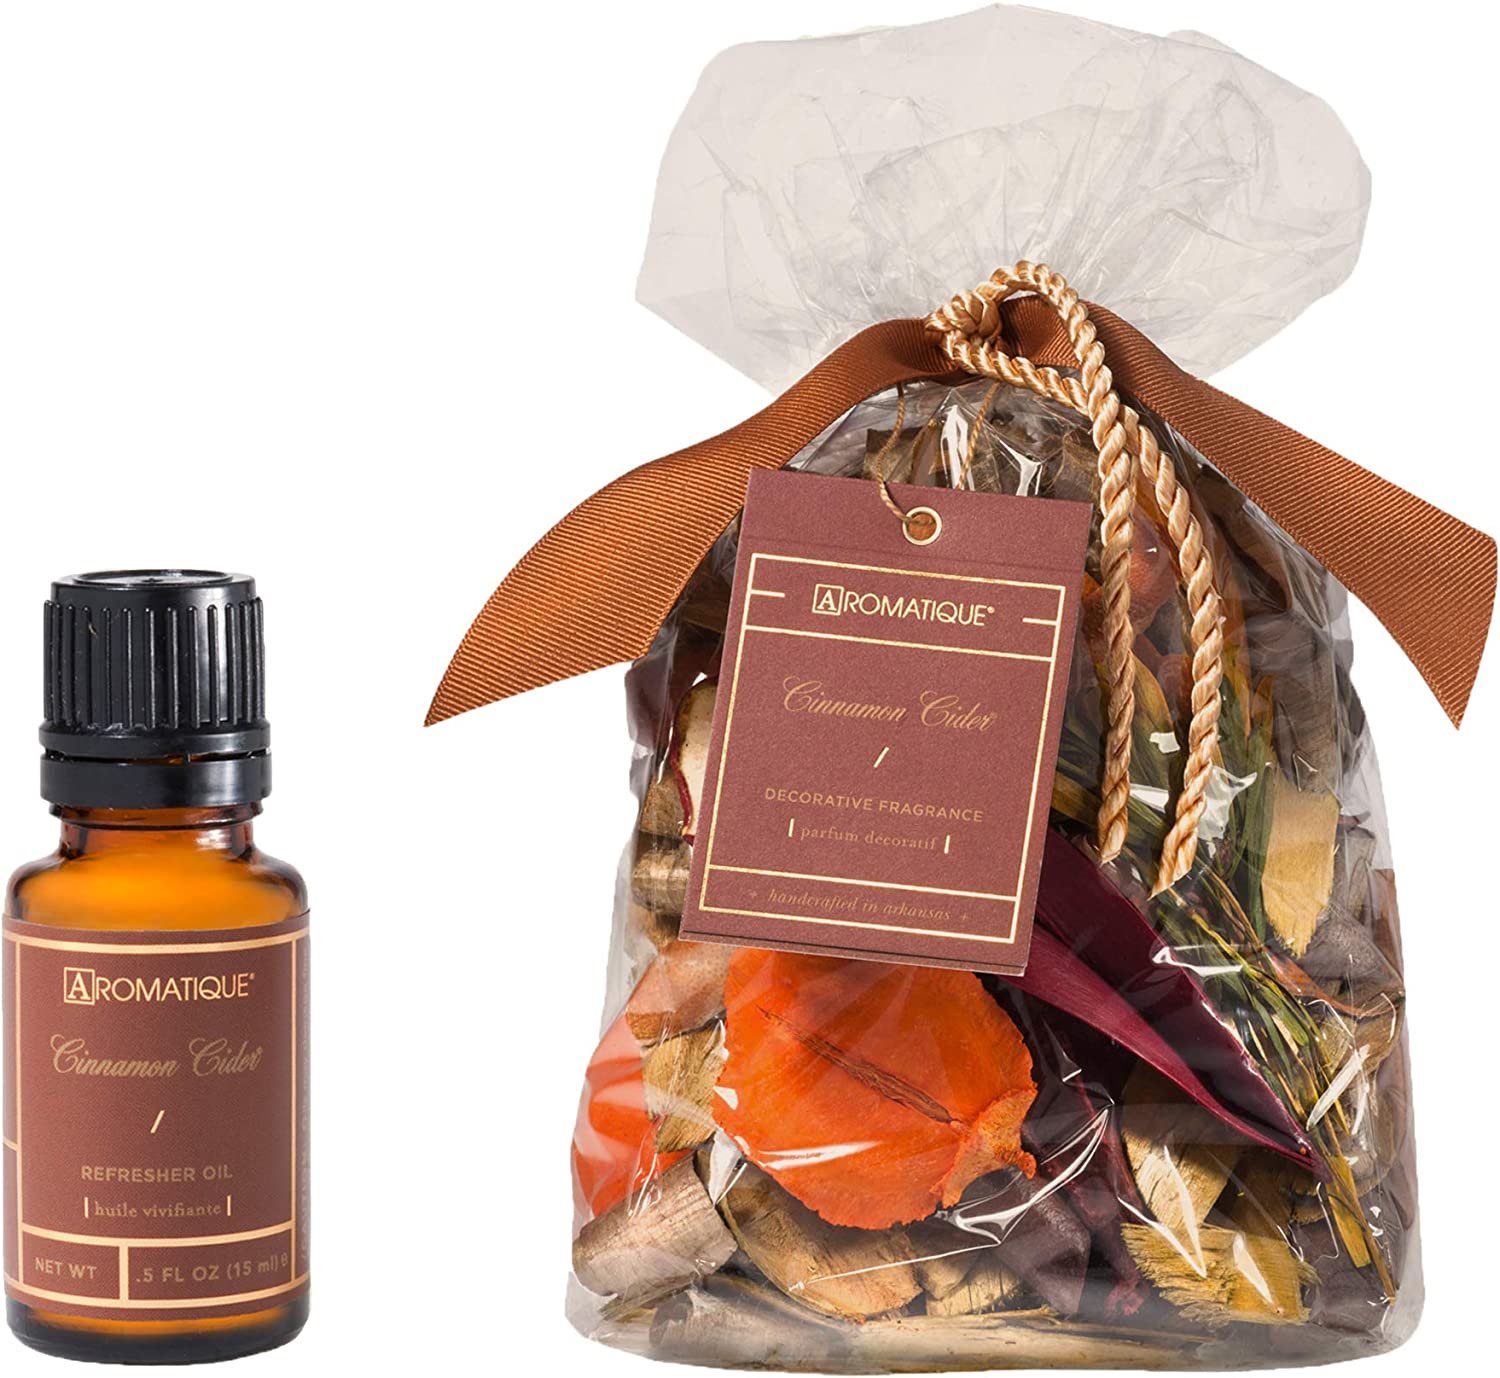 Aromatique Decorative Potpourri - Cinnamon Cider 8oz Bag and Cinnamon Cider Refresher Oil 5-fl. oz. (15ml) Featuring a Gute Carrying Bag (3 Piece Bundle)